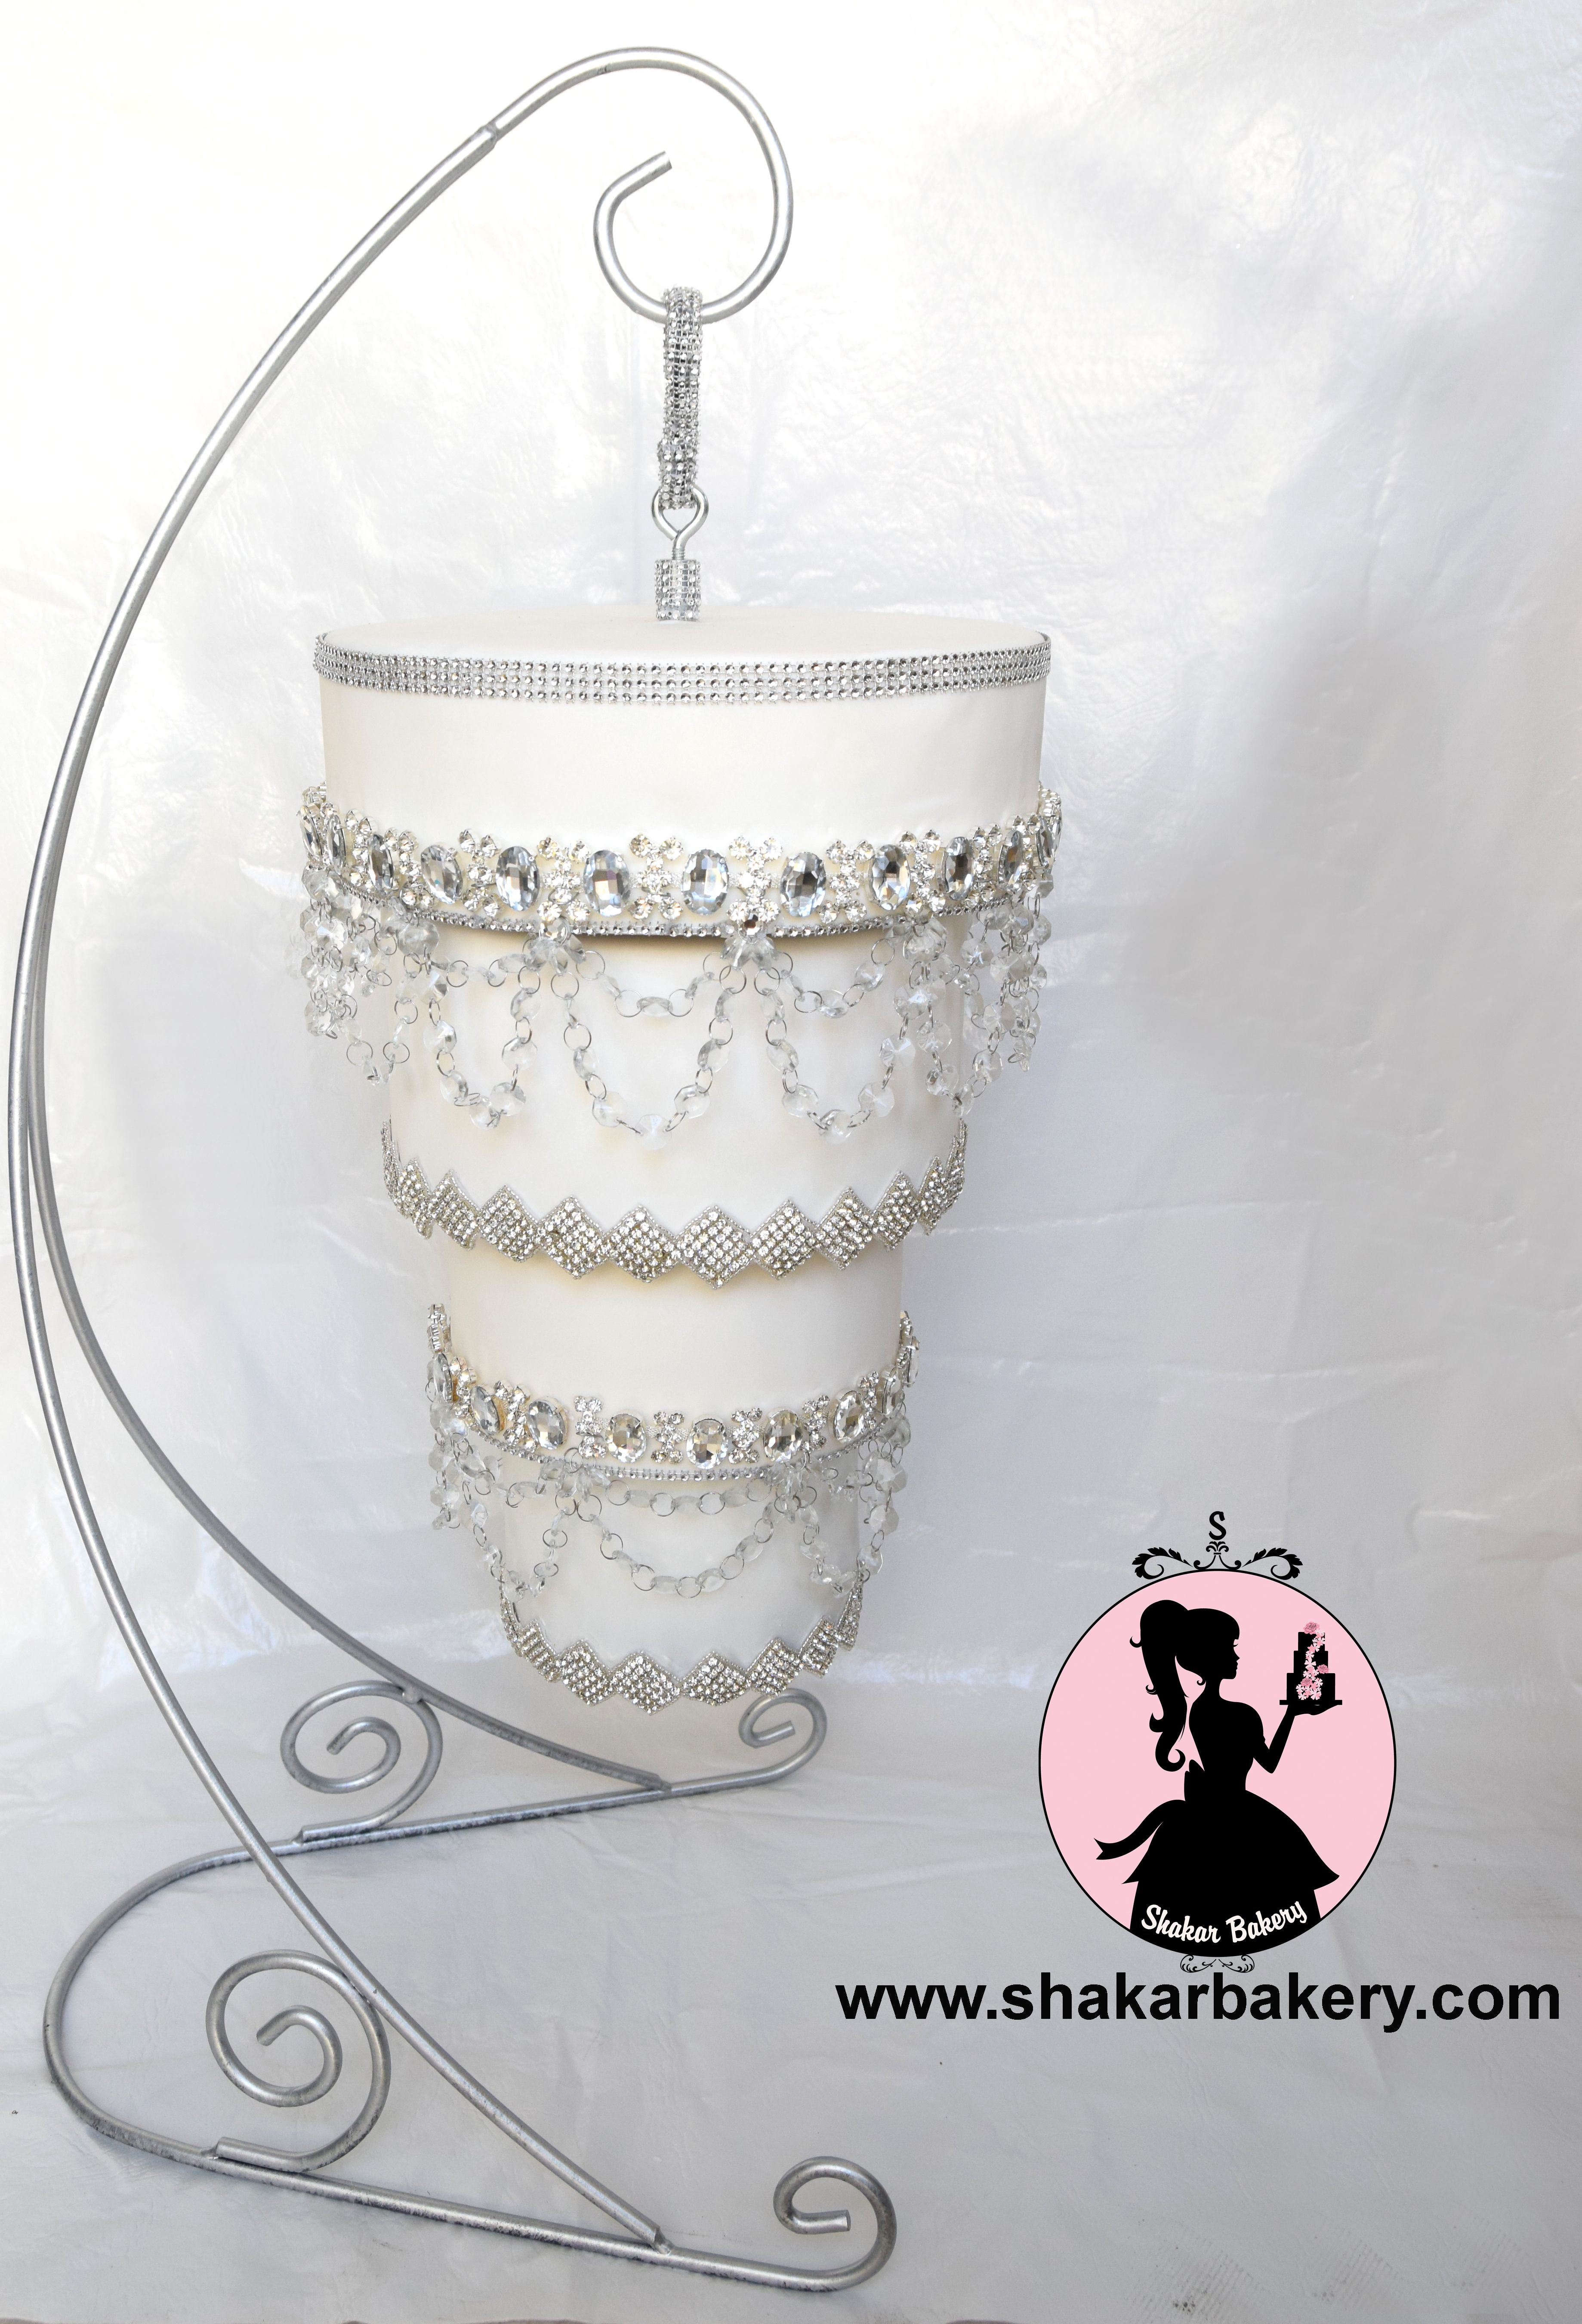 Chandelier Wedding Cakes  Four tier crystal chandelier wedding cake designed for a